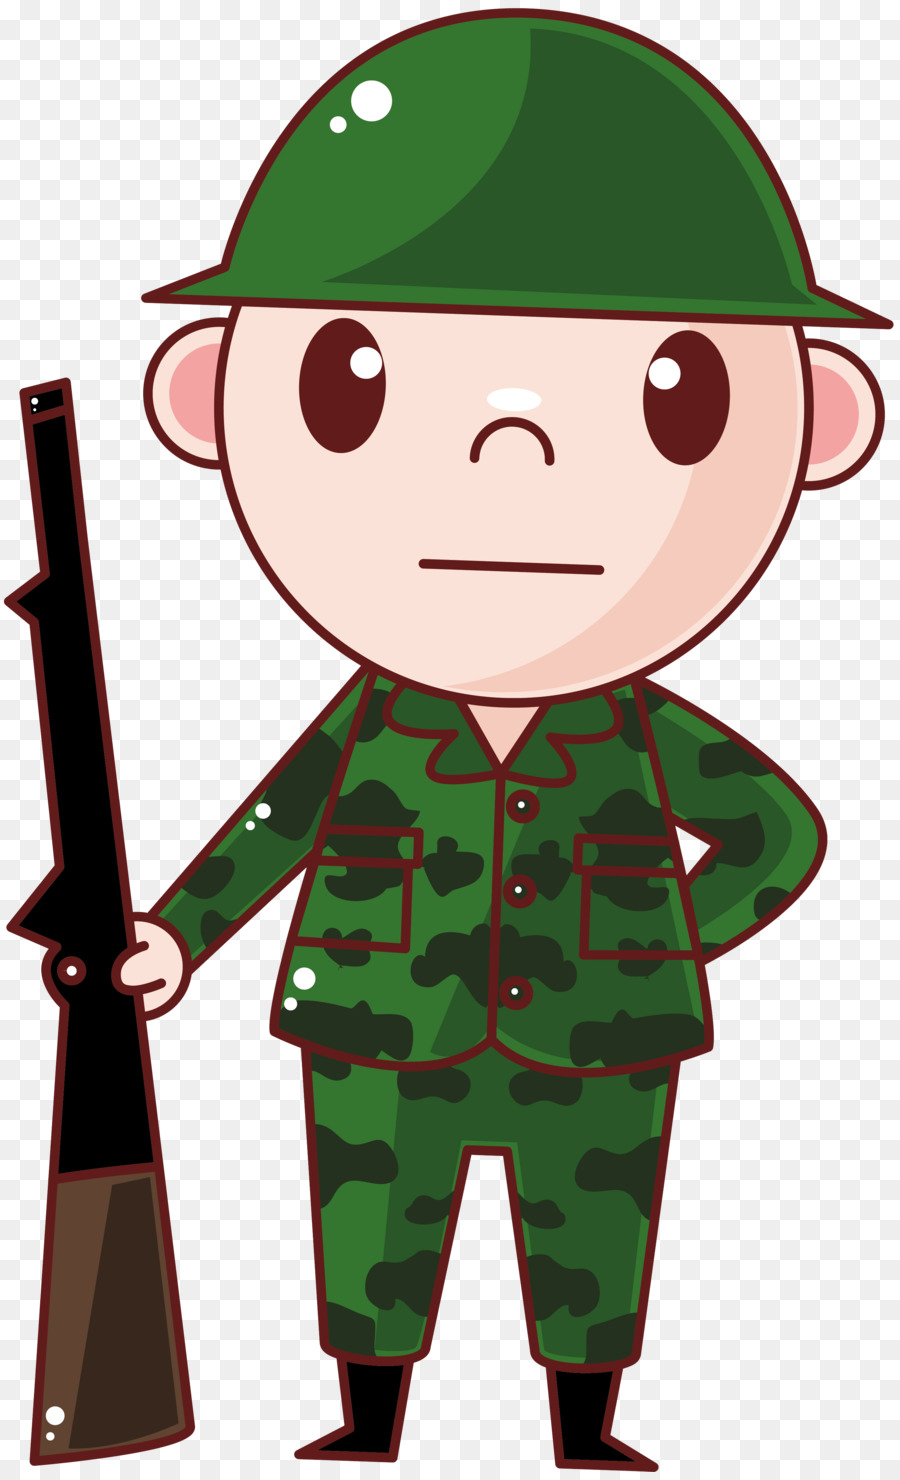 Soldier Drawing Illustration Transparent Png Image Clipart Free